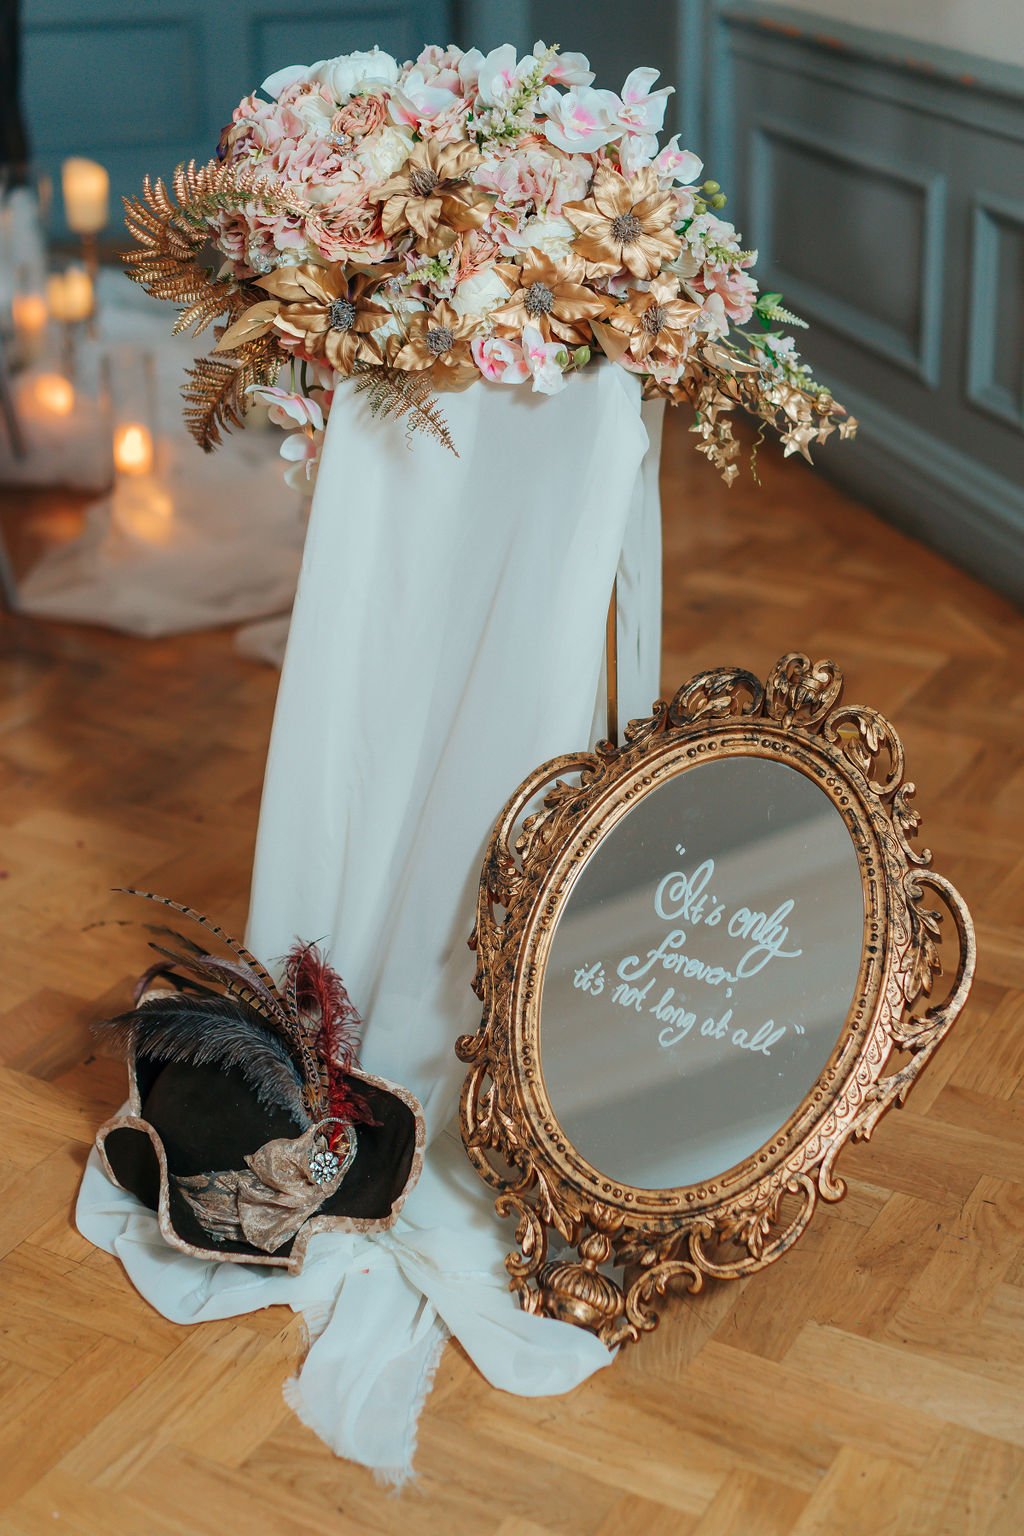 Mirror with the phrase ' its only forever, its not long at all' with flower arrangement on pedestal and groom's hat for a labyrinth themed wedding day